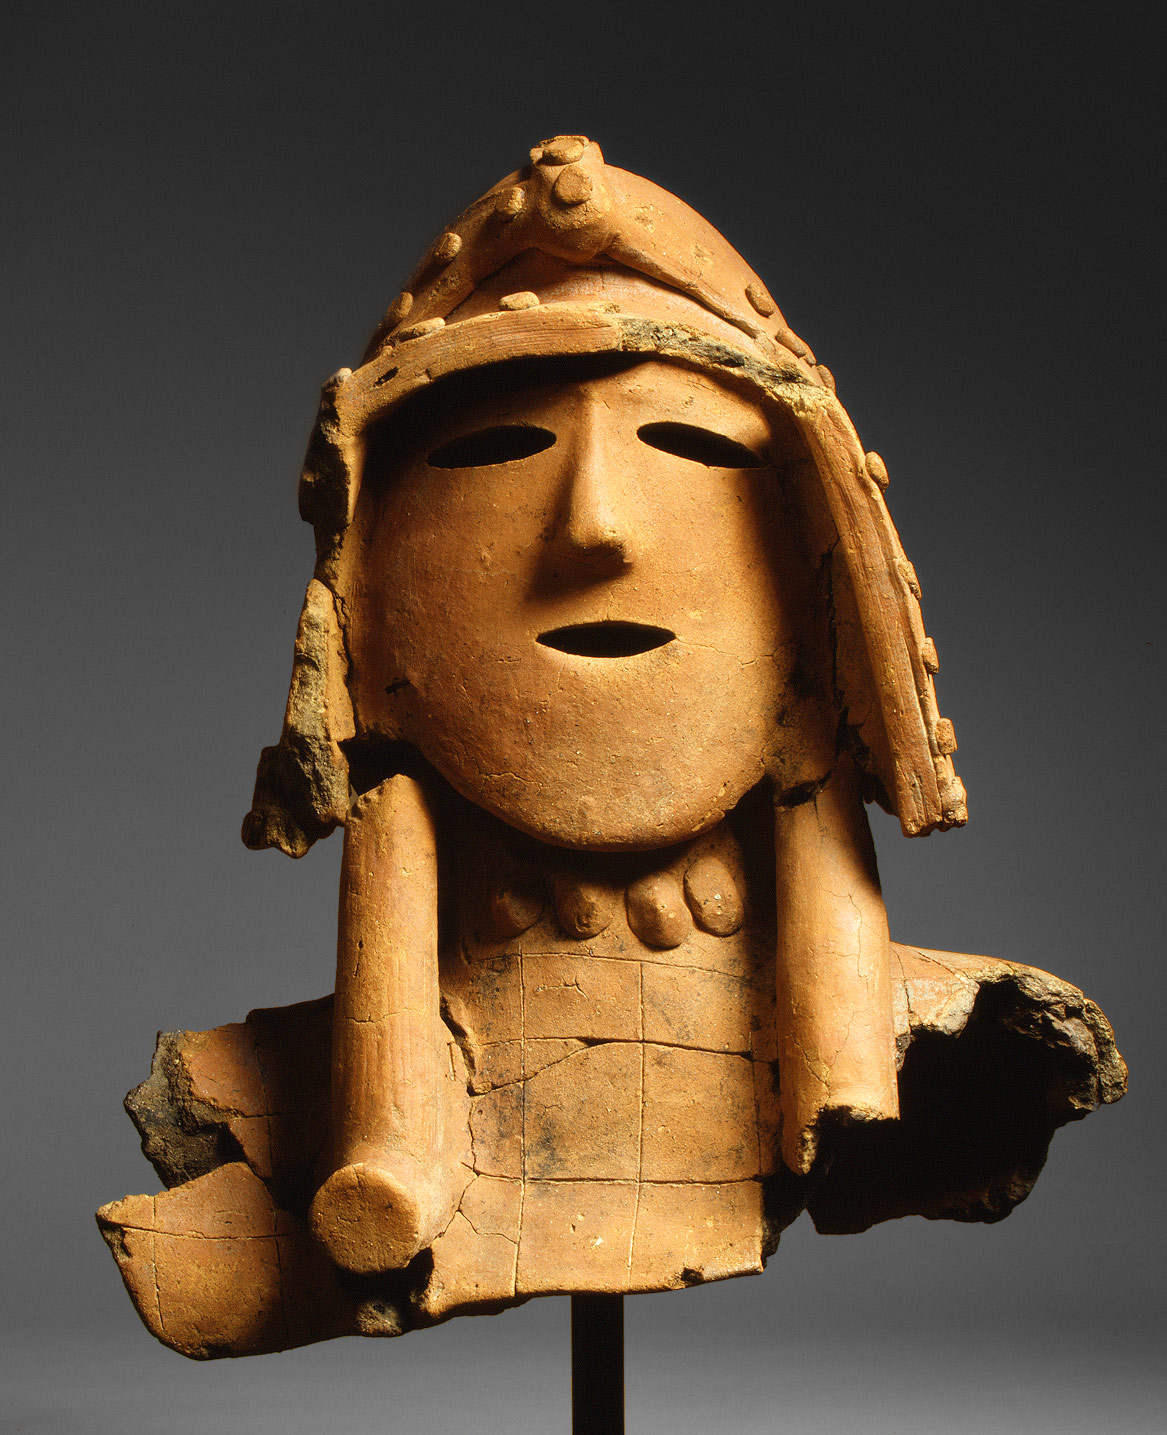 Haniwa (Hollow Clay Sculpture) of a Warrior